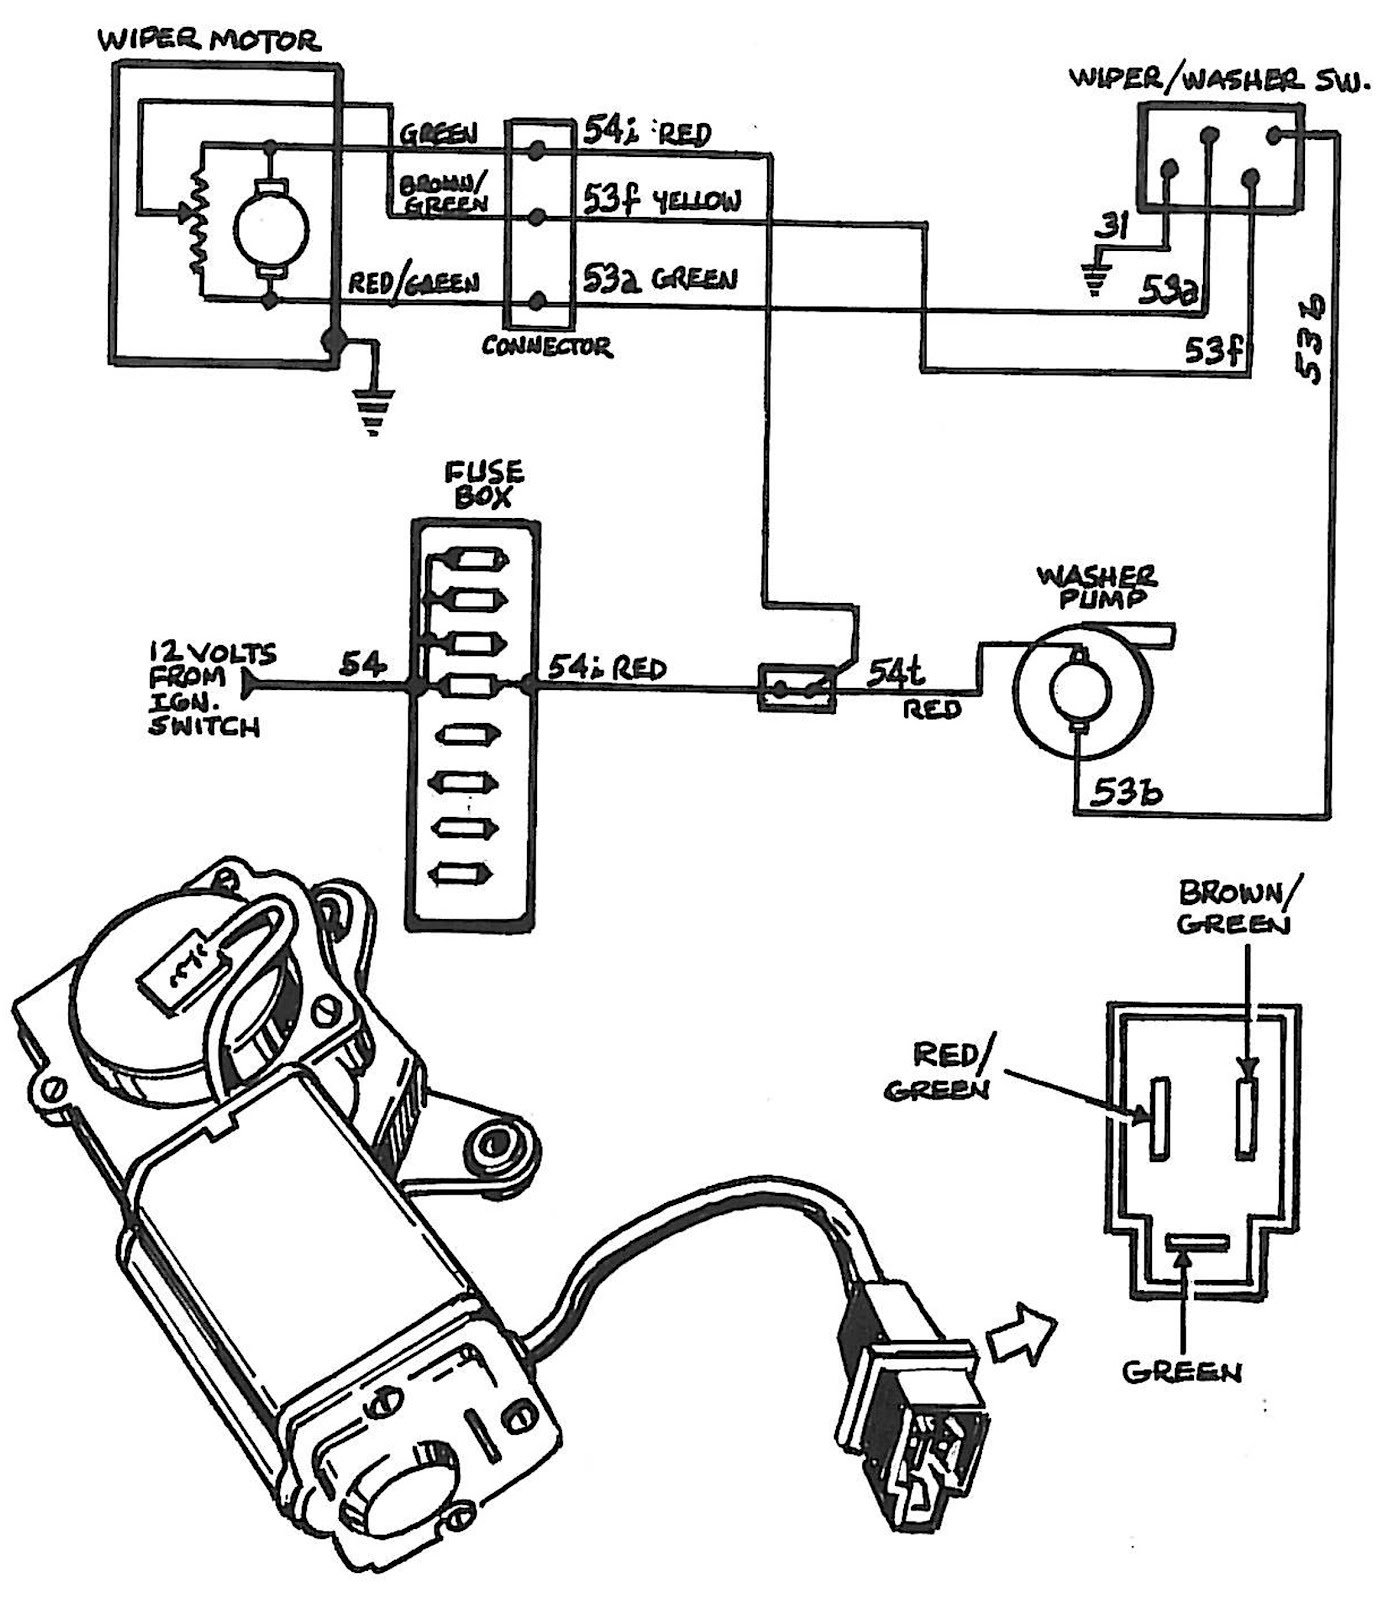 Chevy Volt Battery And Engine Diagrams as well Windshield Wiper Motor Wiring Diagram in addition Hyundai Santa Fe Wiring Diagram further 2004 Acura TSX likewise 100W Audio  lifier Circuit Diagram. on 2008 vw beetle wiring diagrams